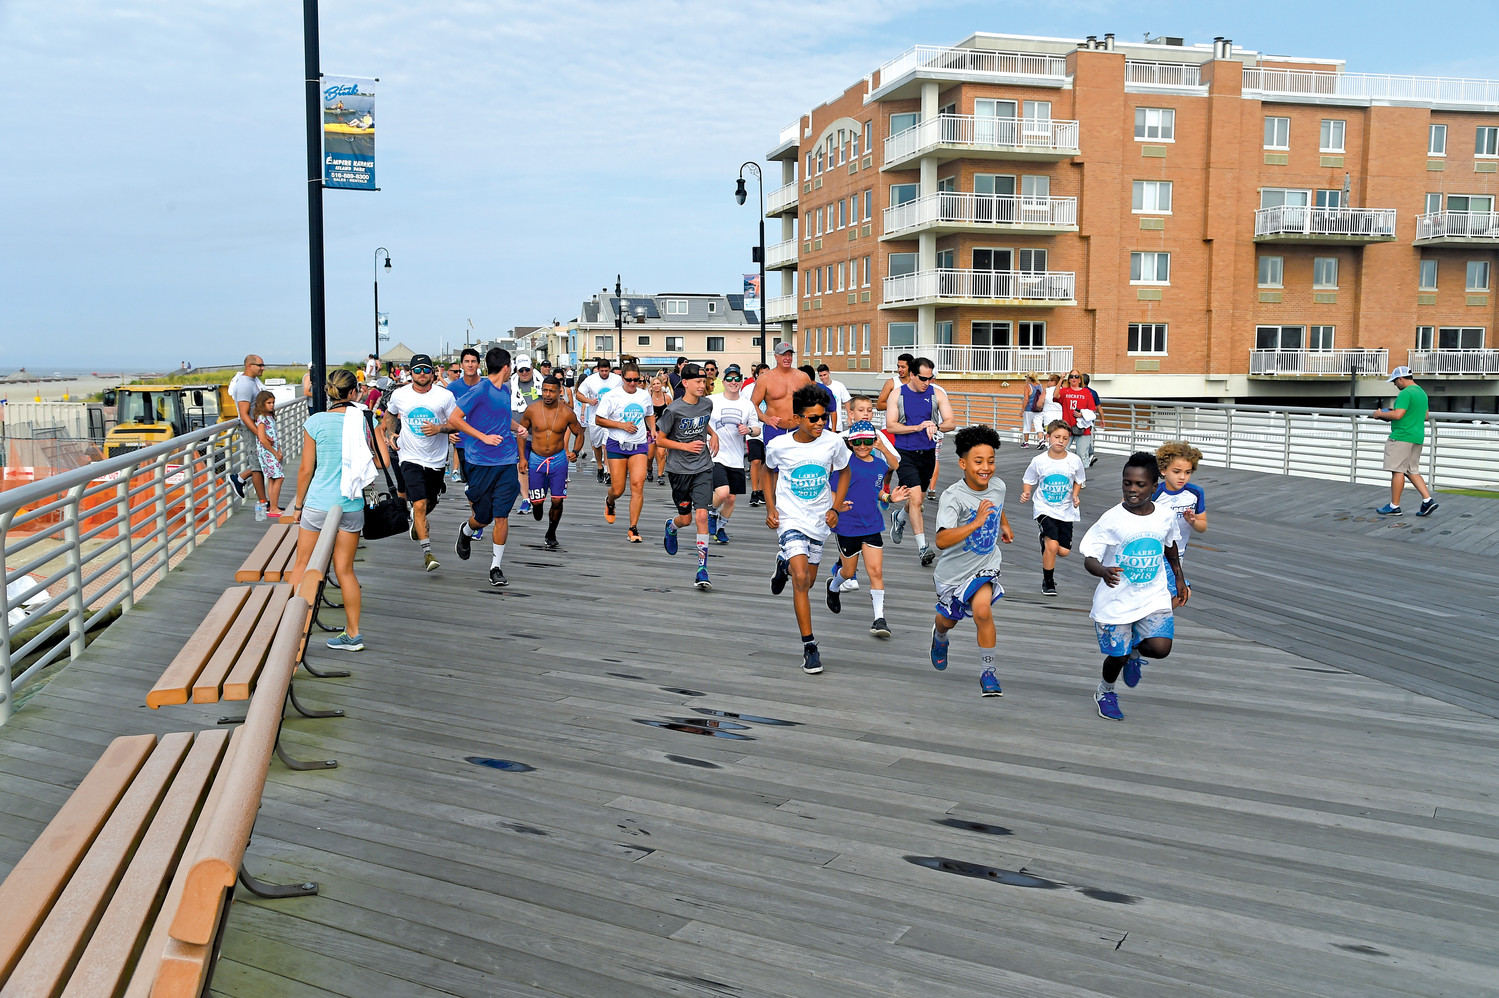 About 100 people participated in this year's Larry Elovich 5K Memorial Fun Run and Walk on the boardwalk.